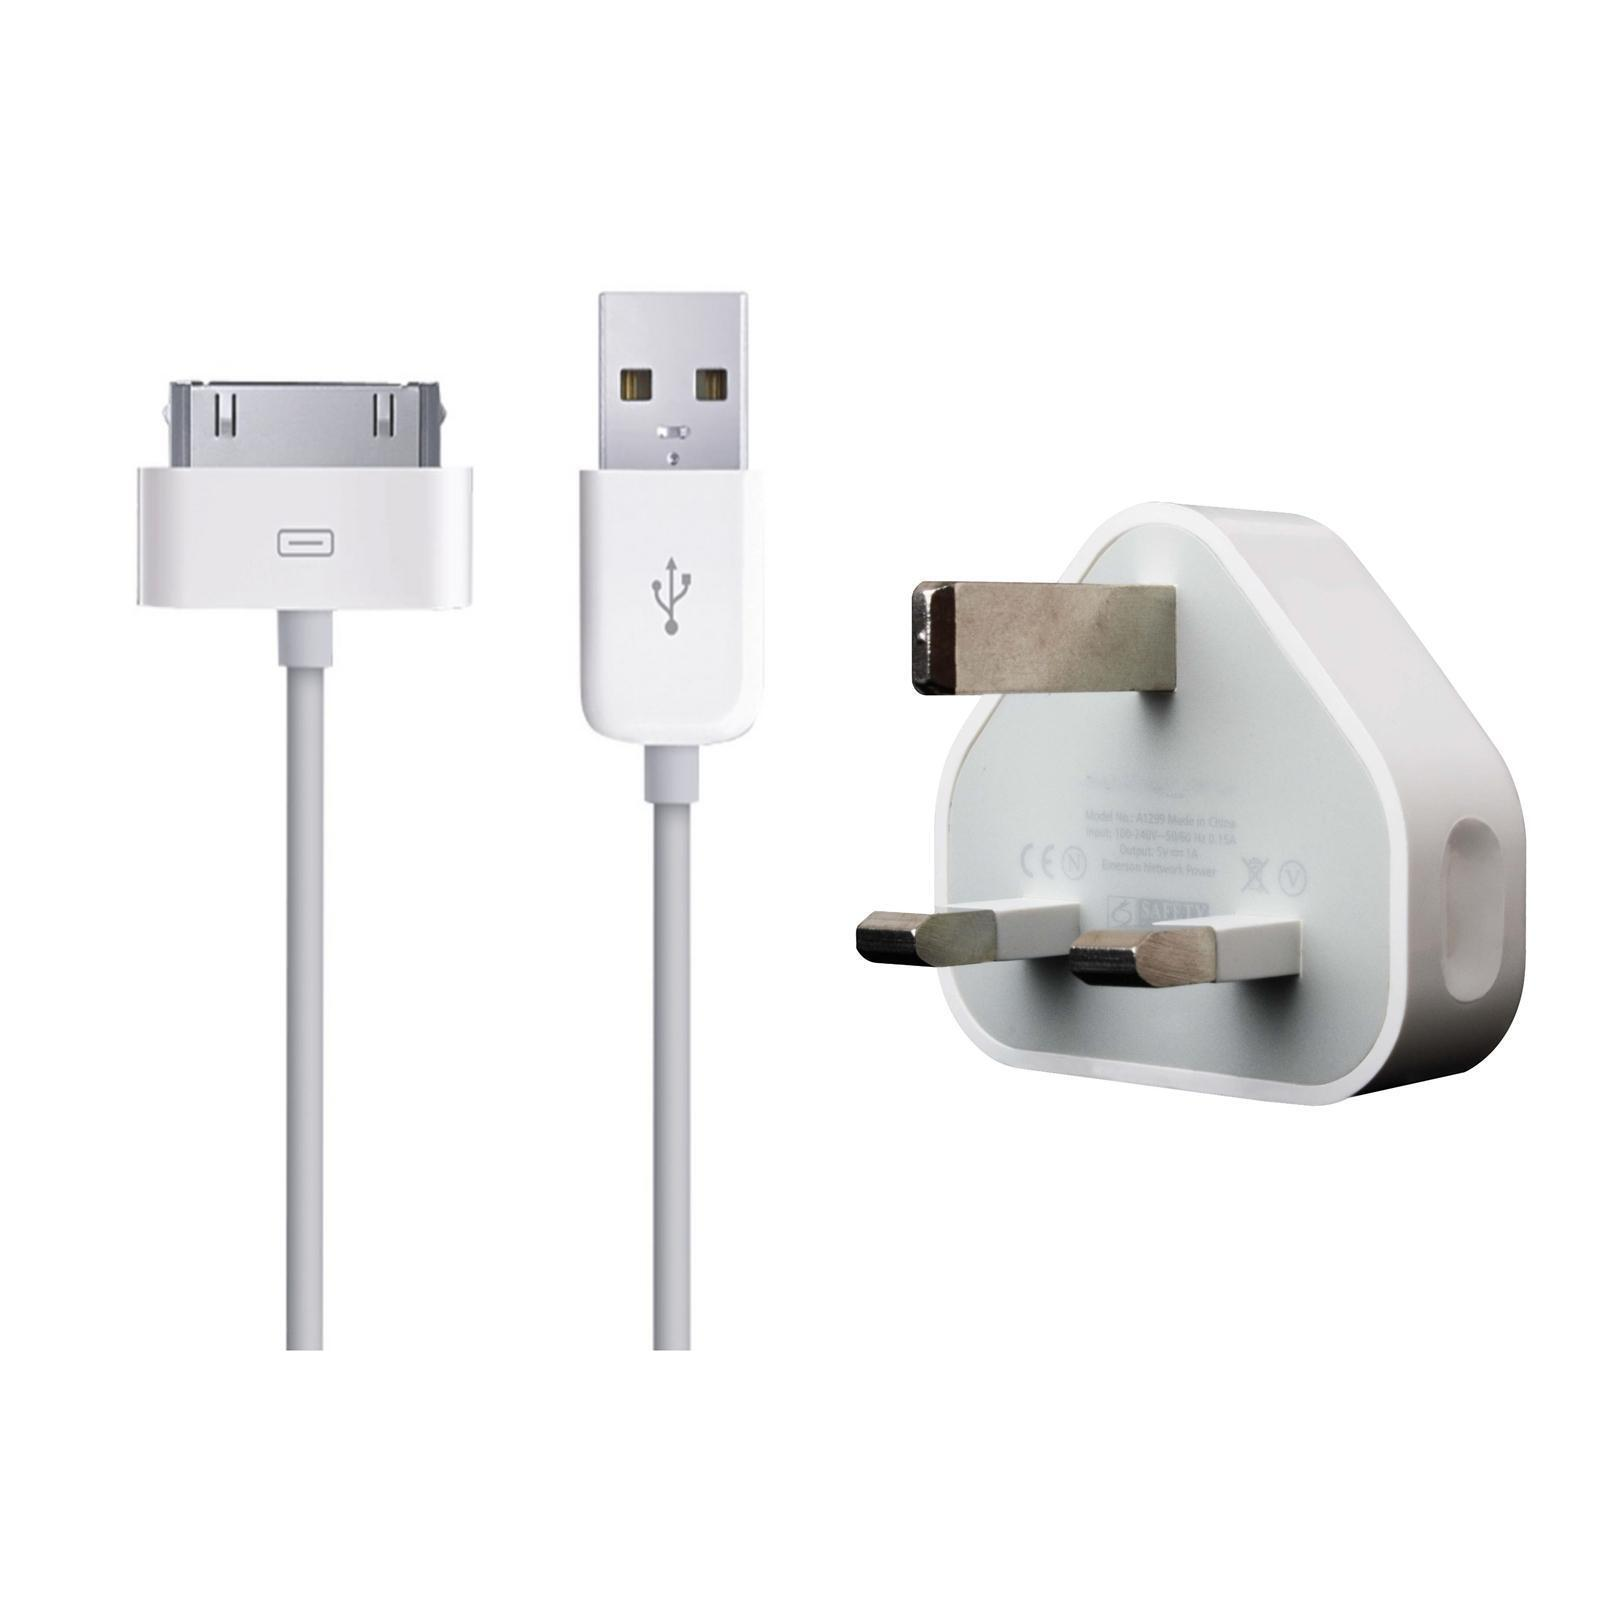 iPod Nano Mains Charger